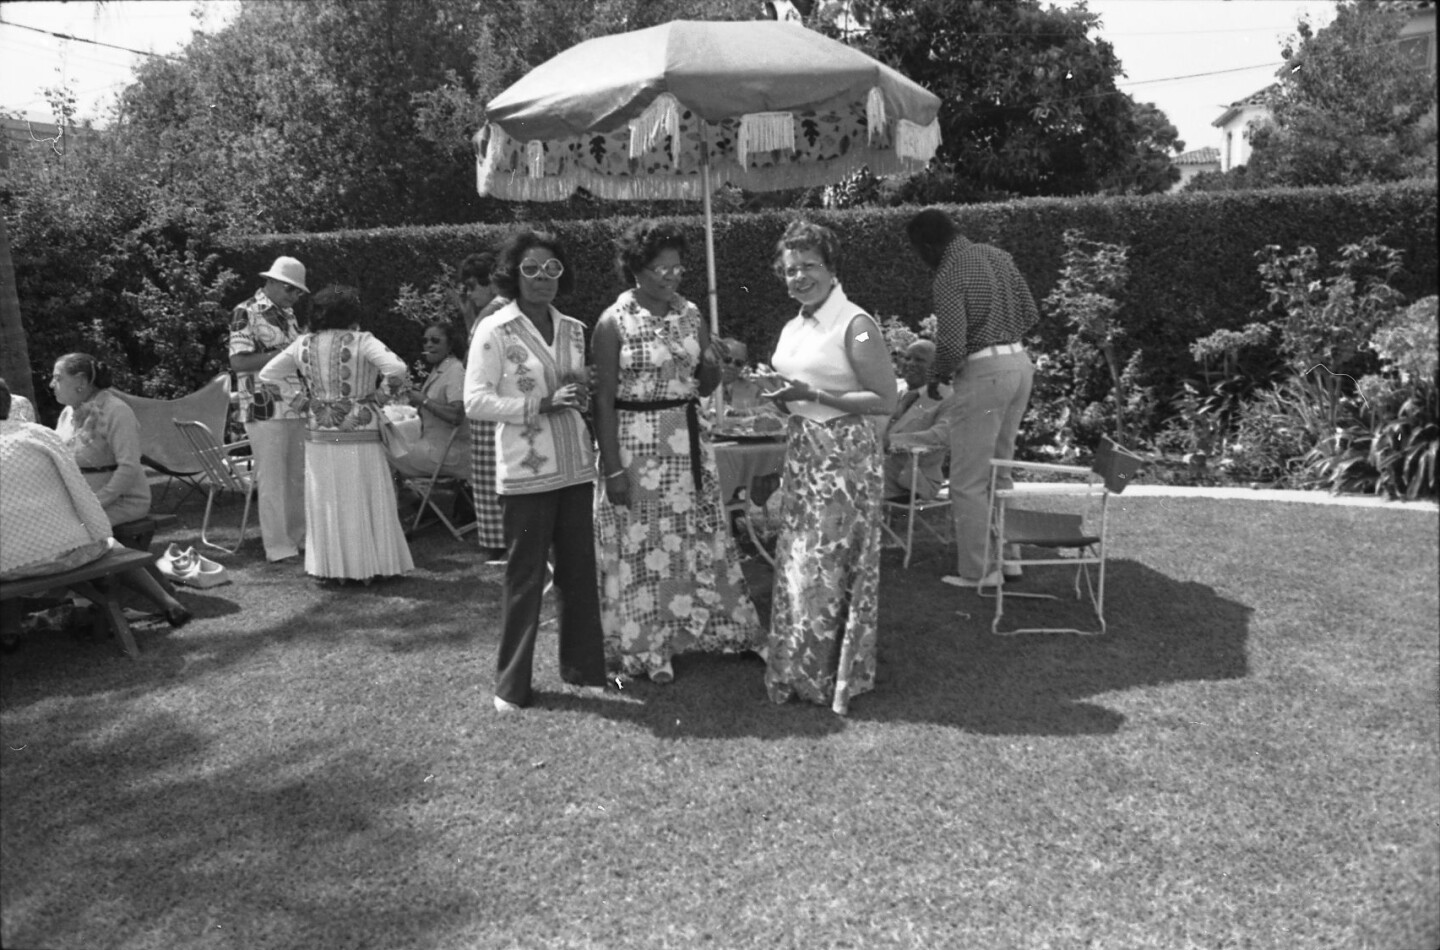 Men and women talking at a backyard garden party in Oakland, circa 1970s. | Oakland Public Library Digital Collections